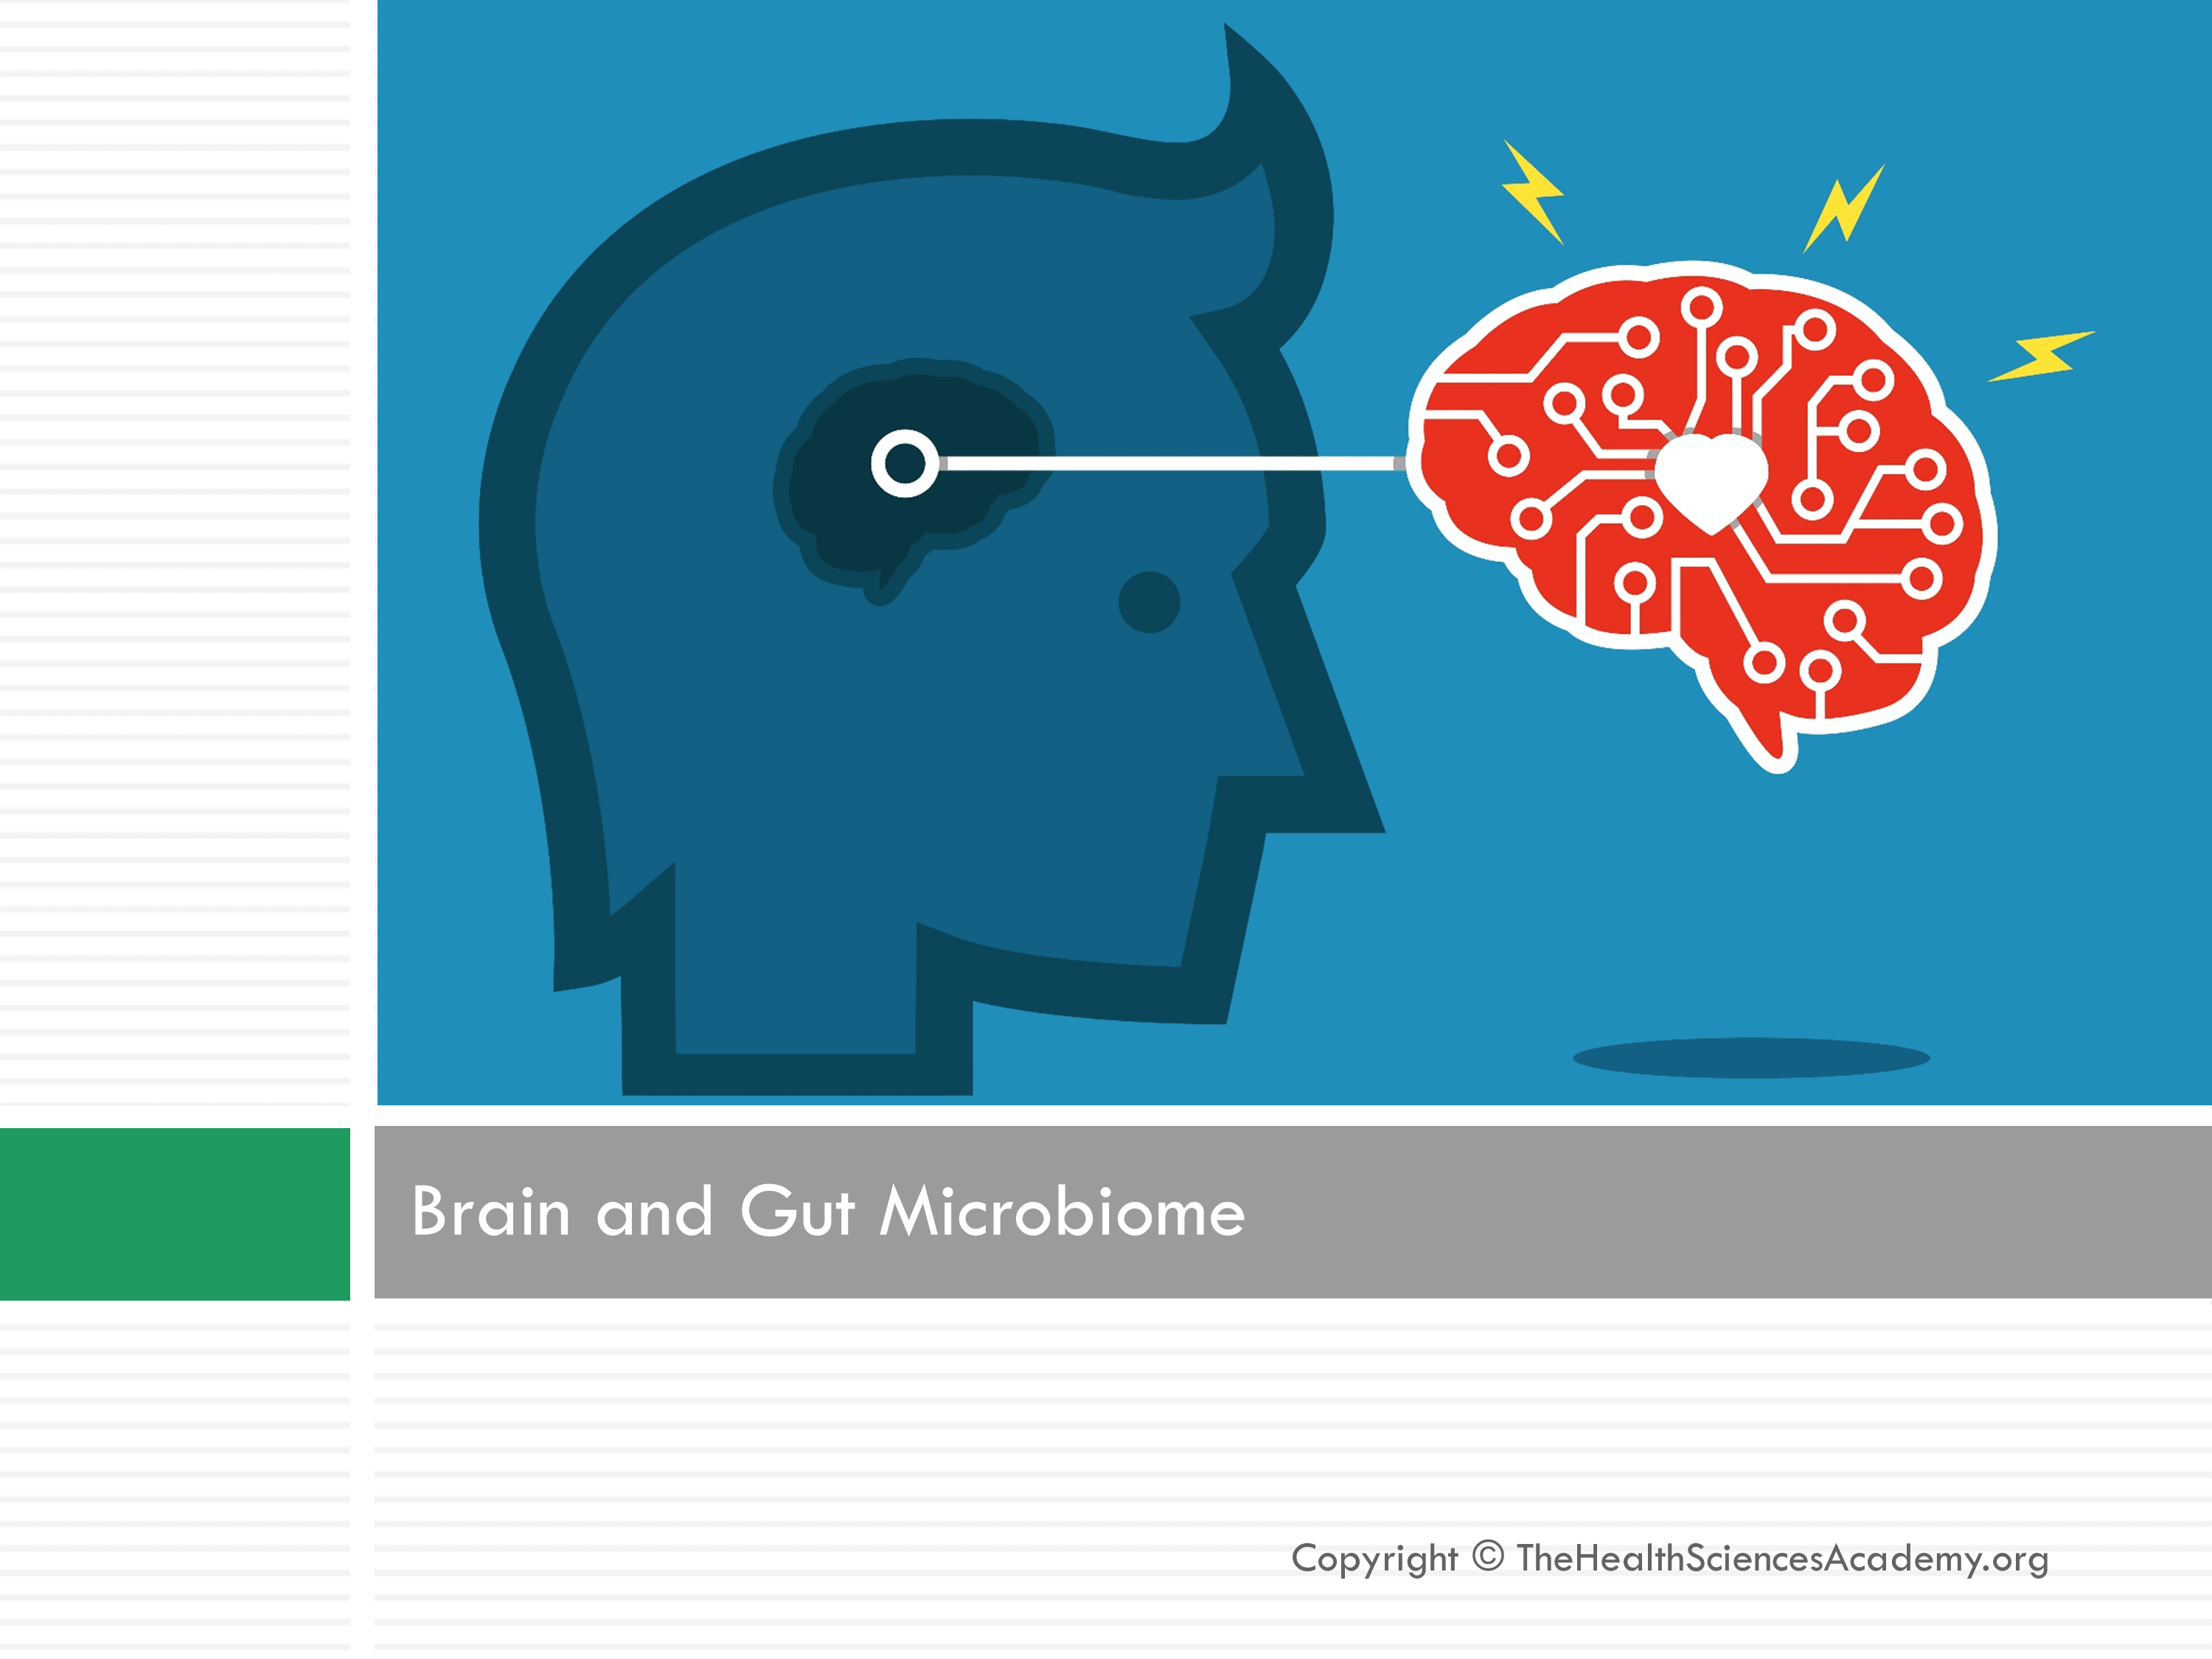 How Gut Microbes Can Change the Brain